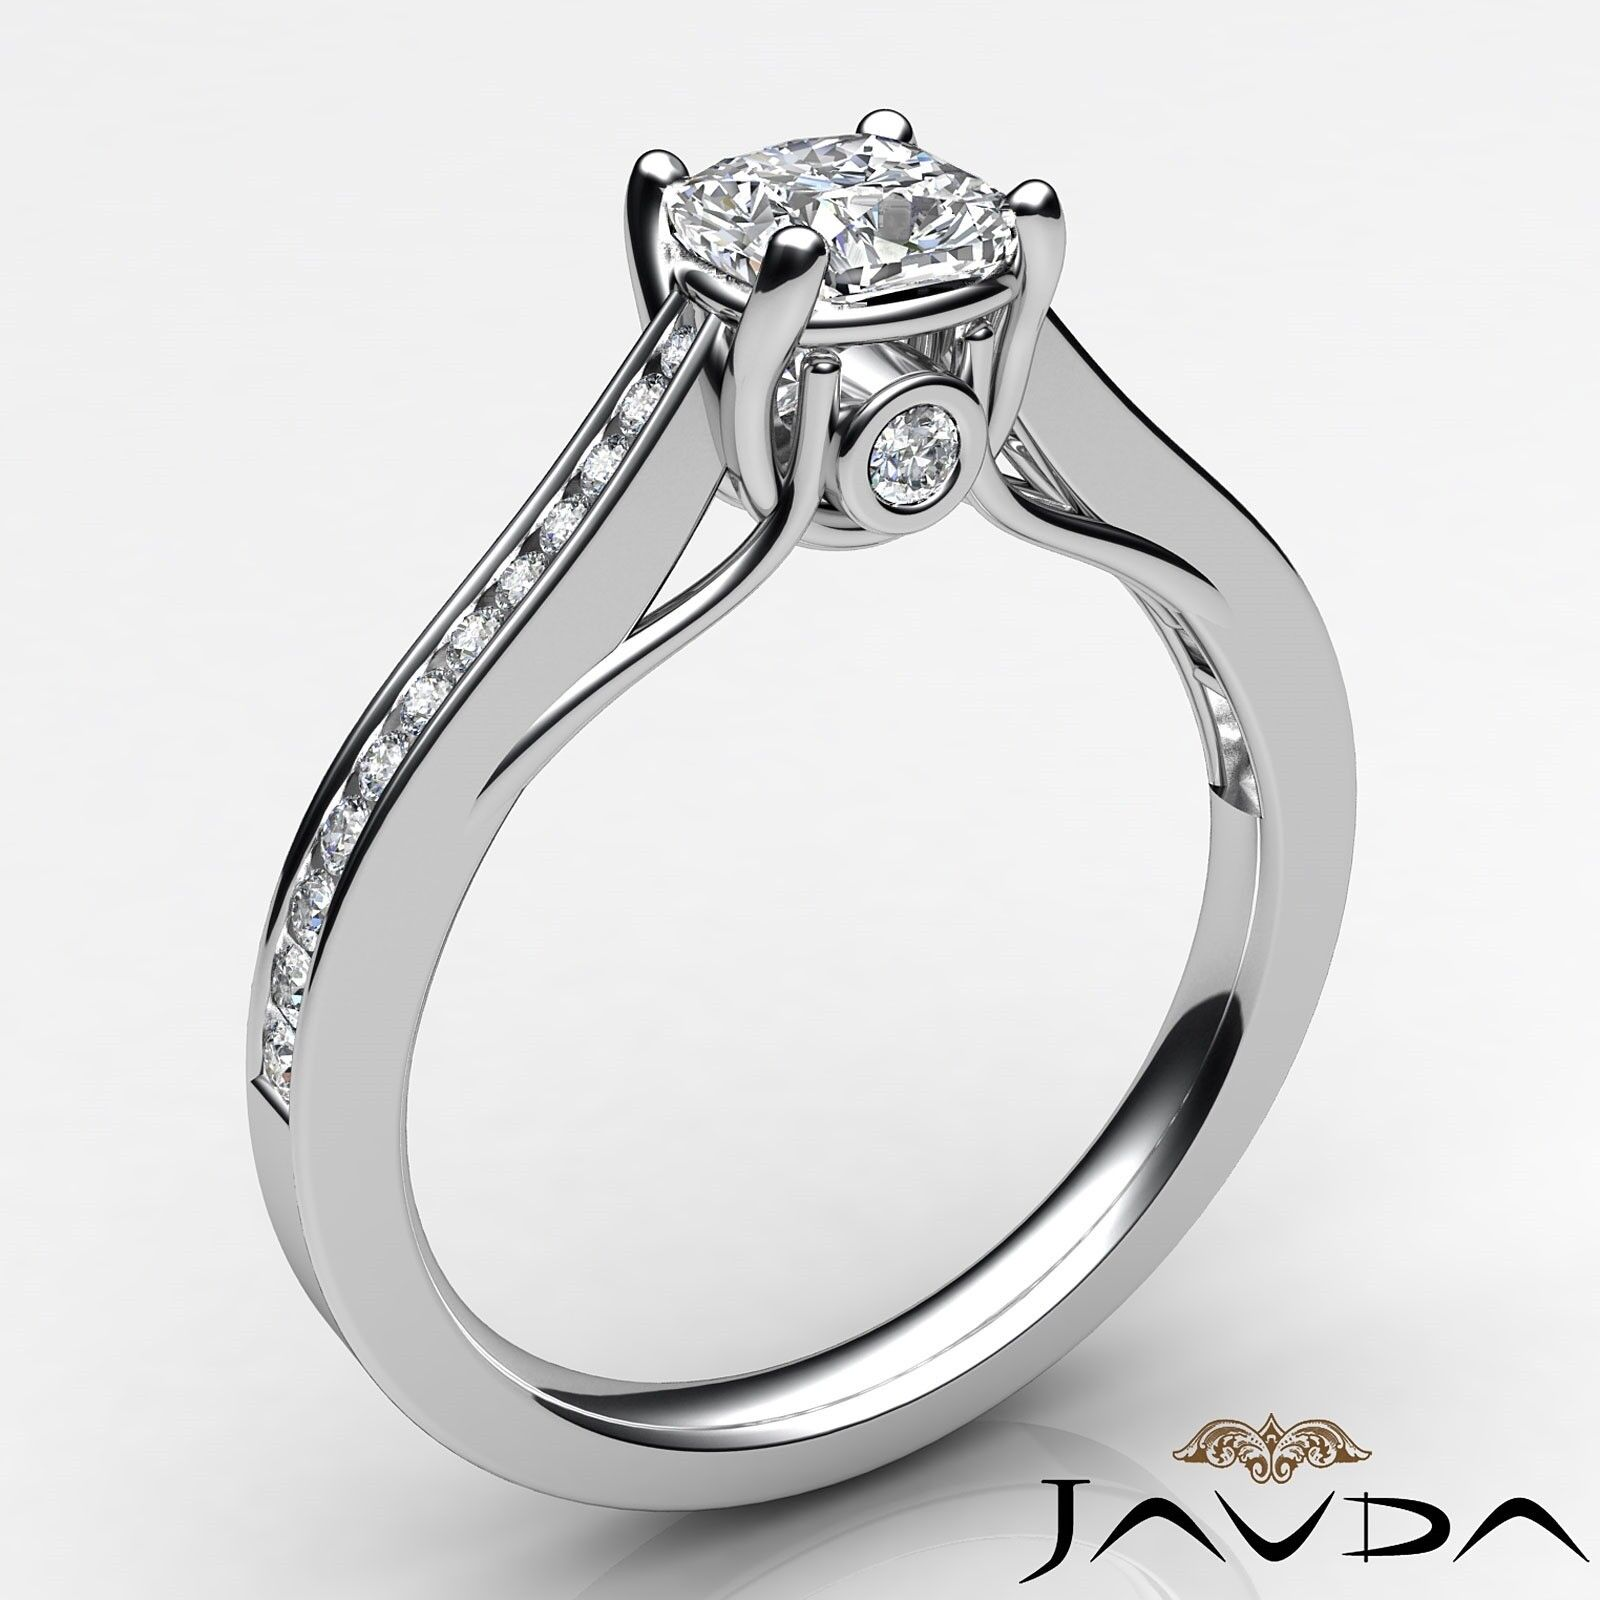 1.1ctw Channel Bezel Prong Cushion Diamond Engagement Ring GIA G-VVS2 White Gold 1